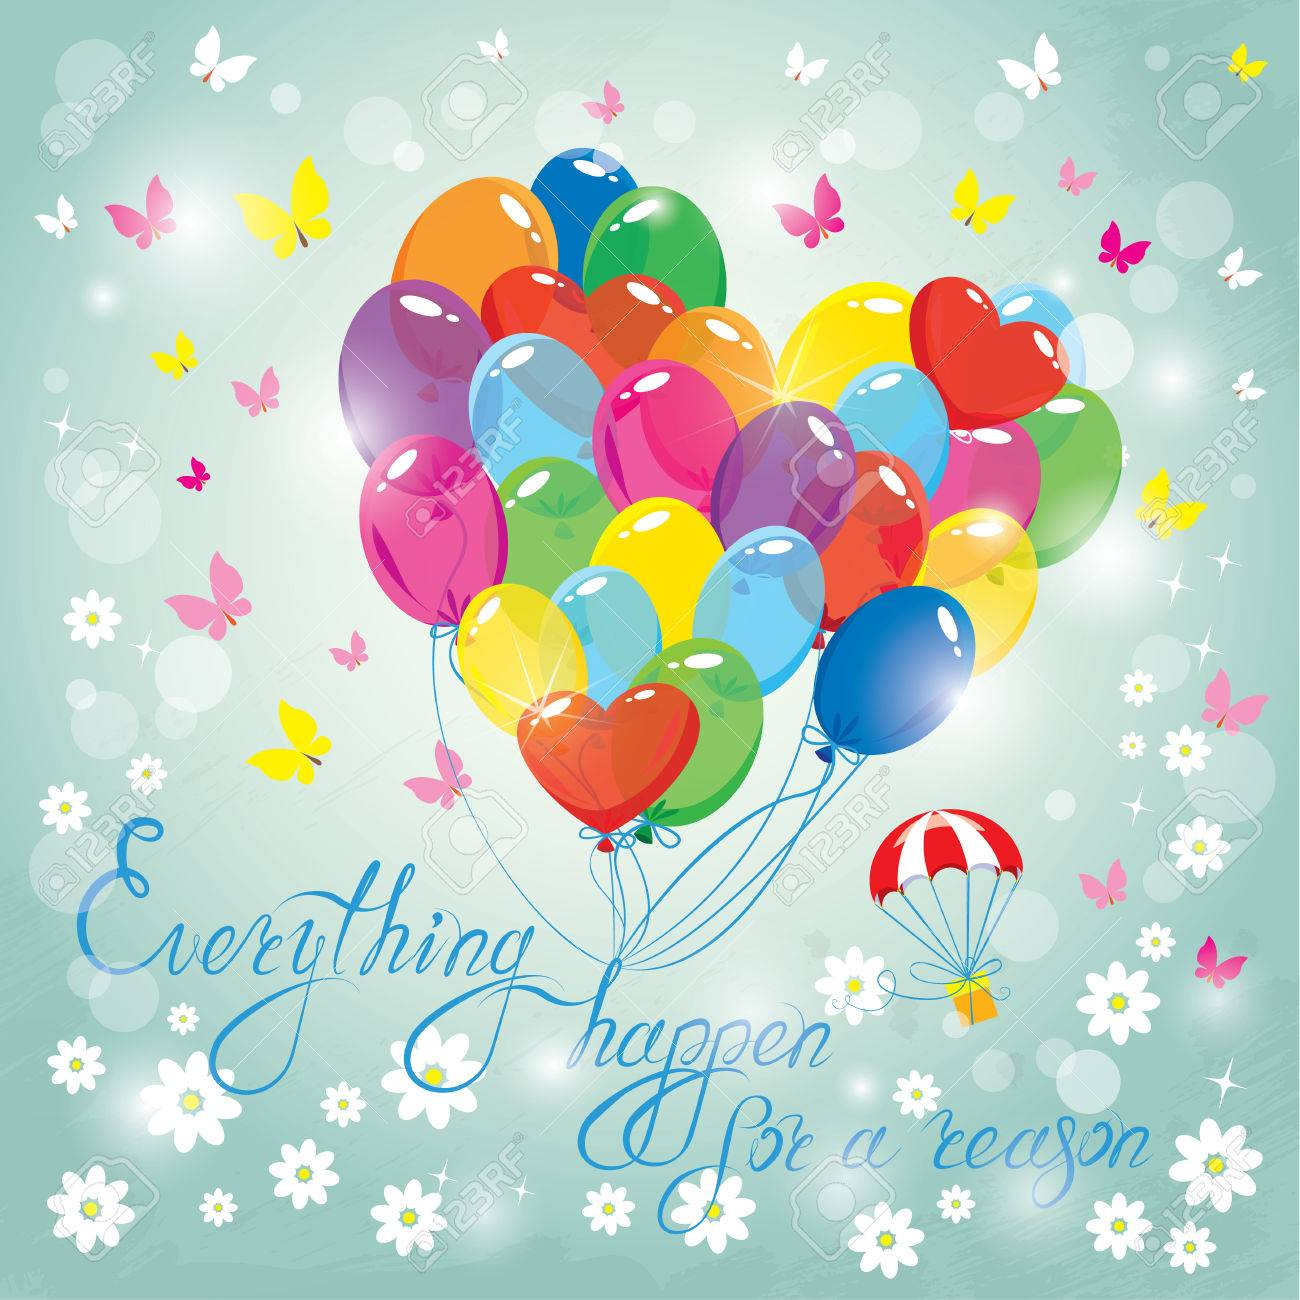 image with colorful balloons in heart shape on sky blue background